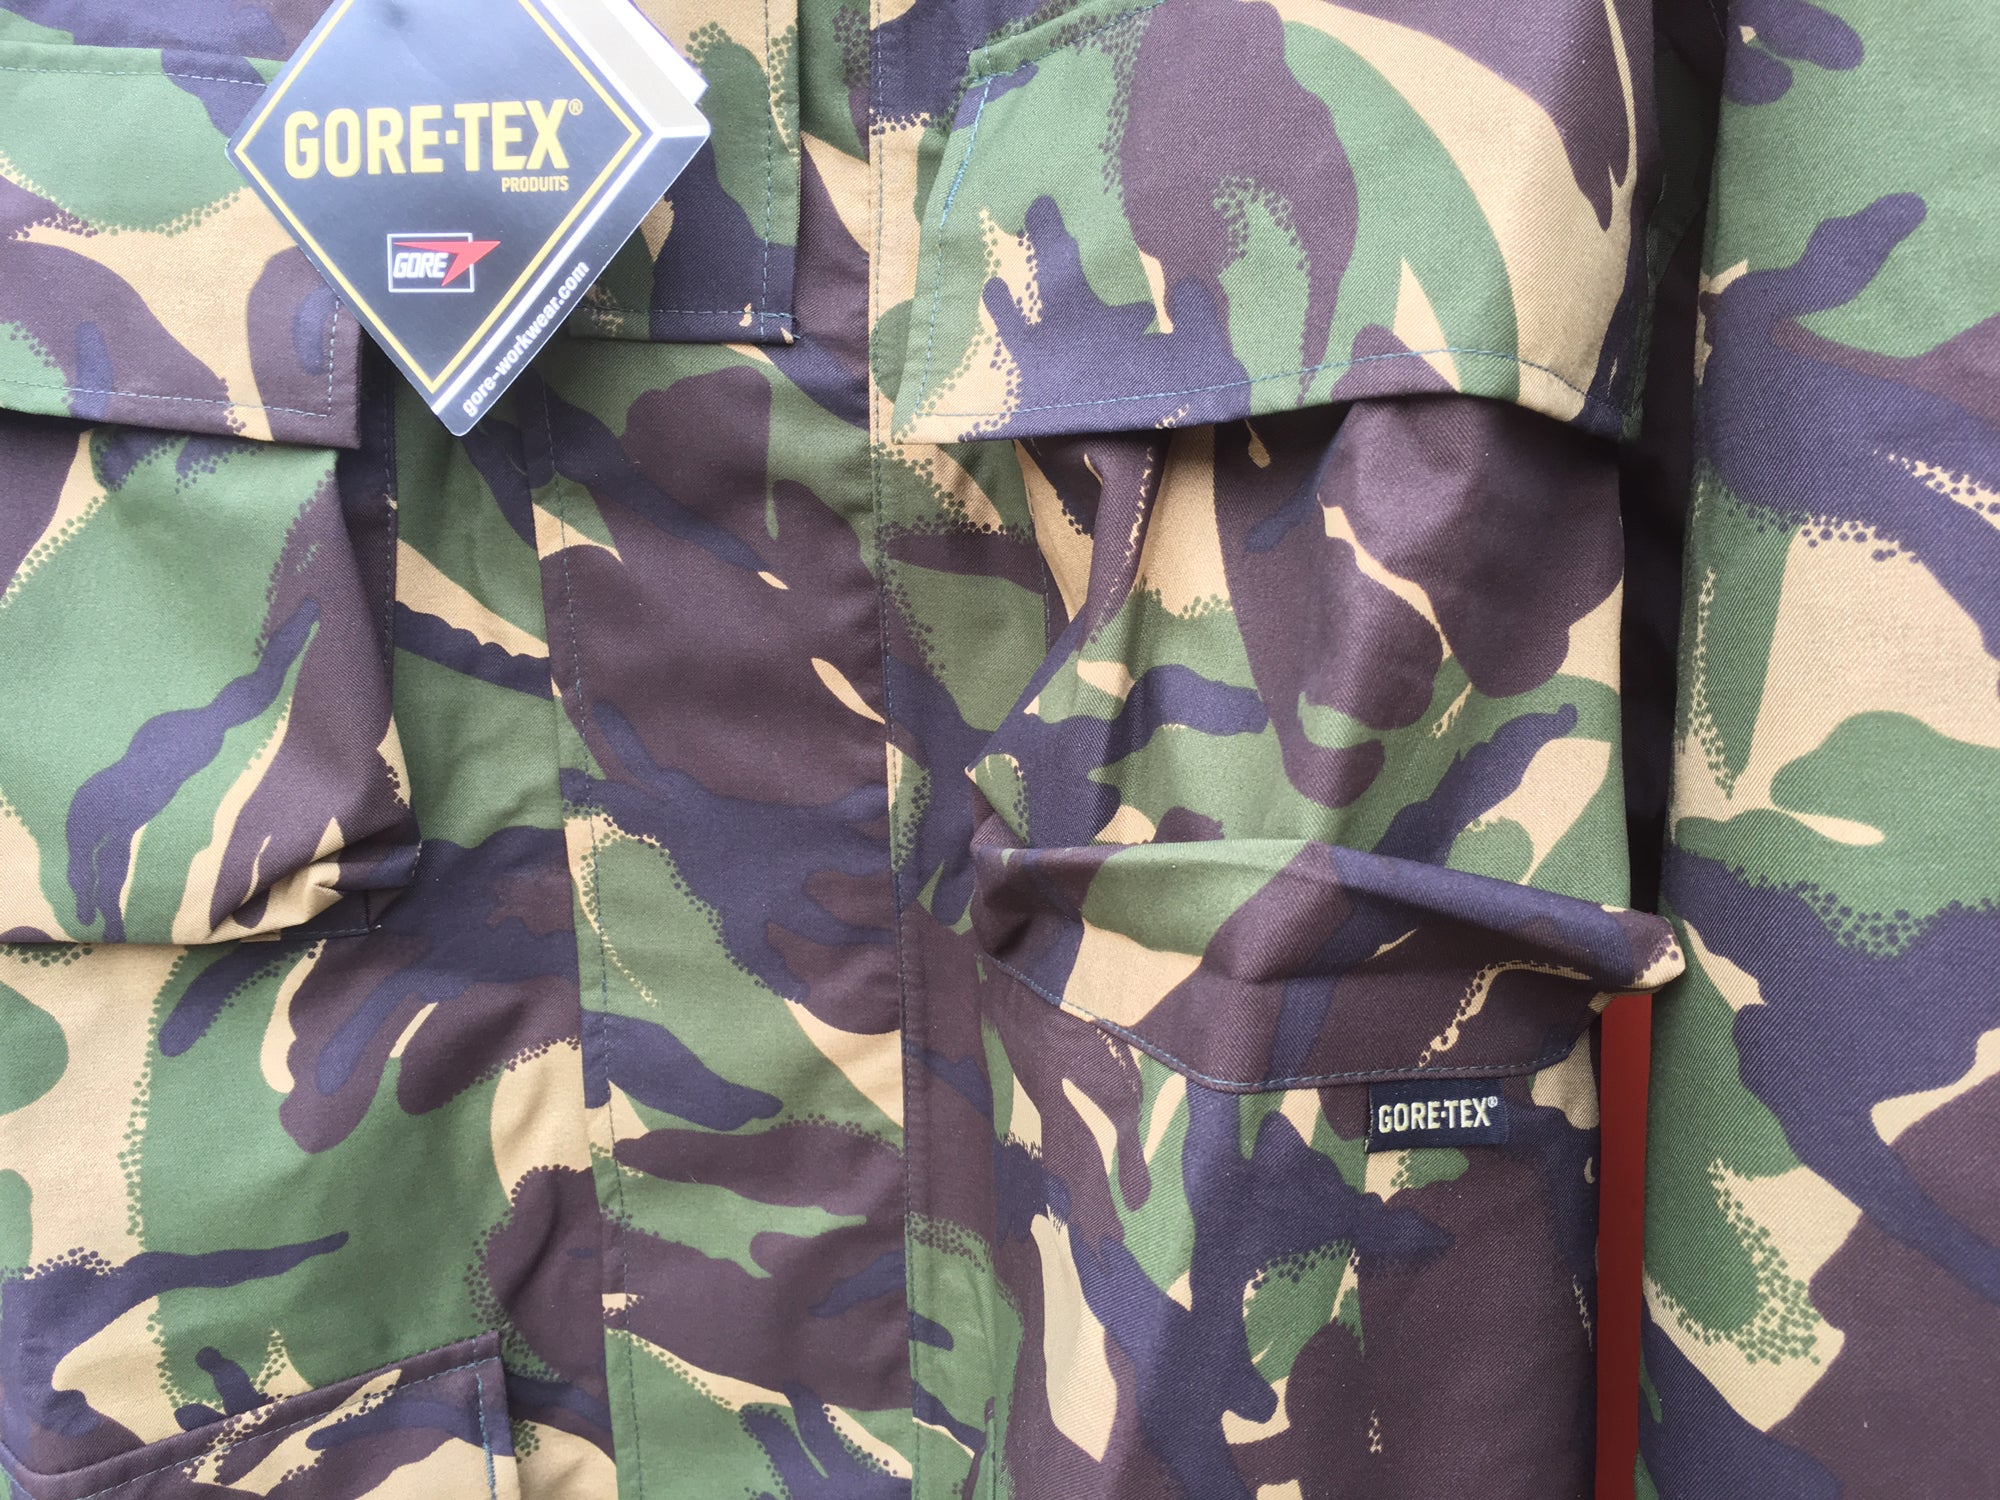 ae8d5584 XXXL+ British Army Surplus DPM Gore-Tex Jackets - New | Forces ...